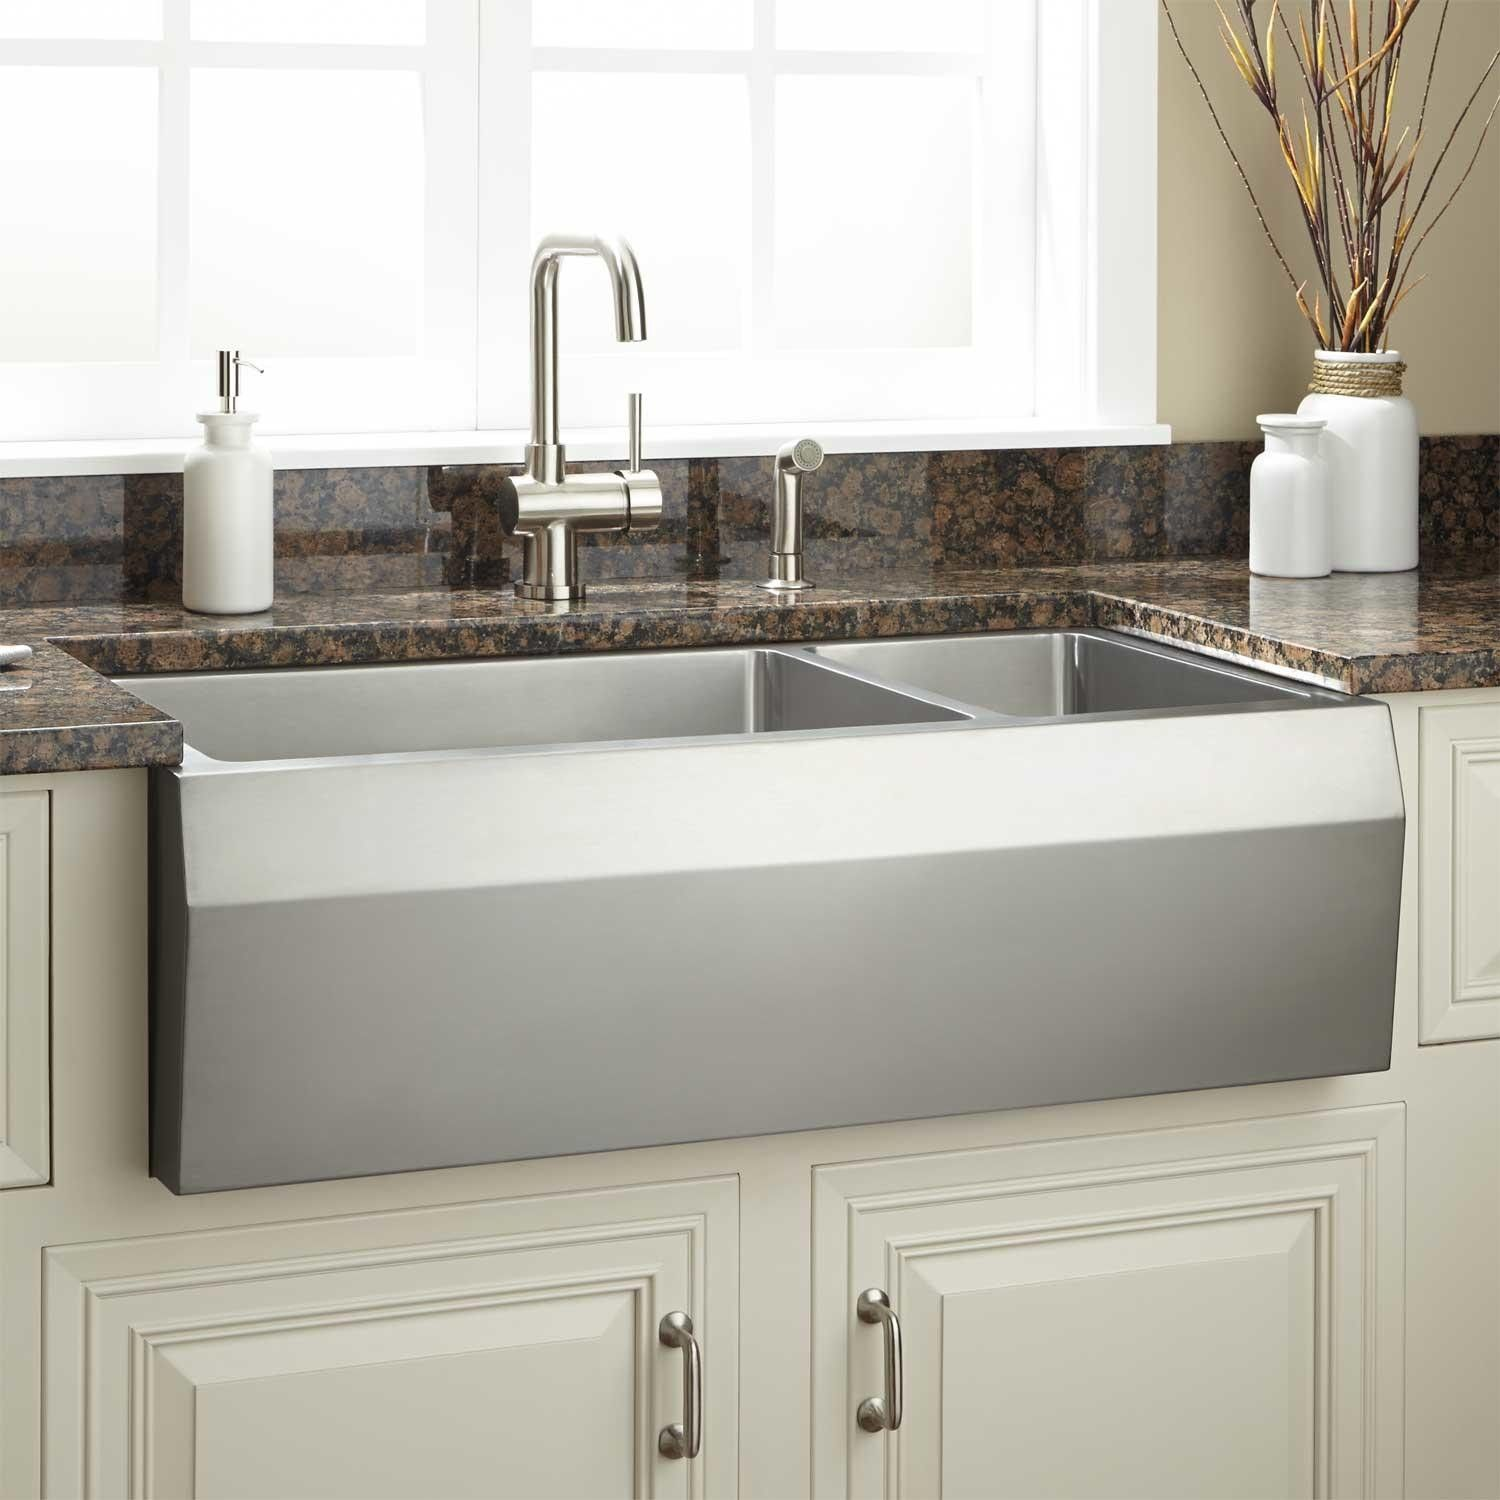 36 Kingsley 70 30 Offset Double Bowl Stainless Steel Farmhouse Sink